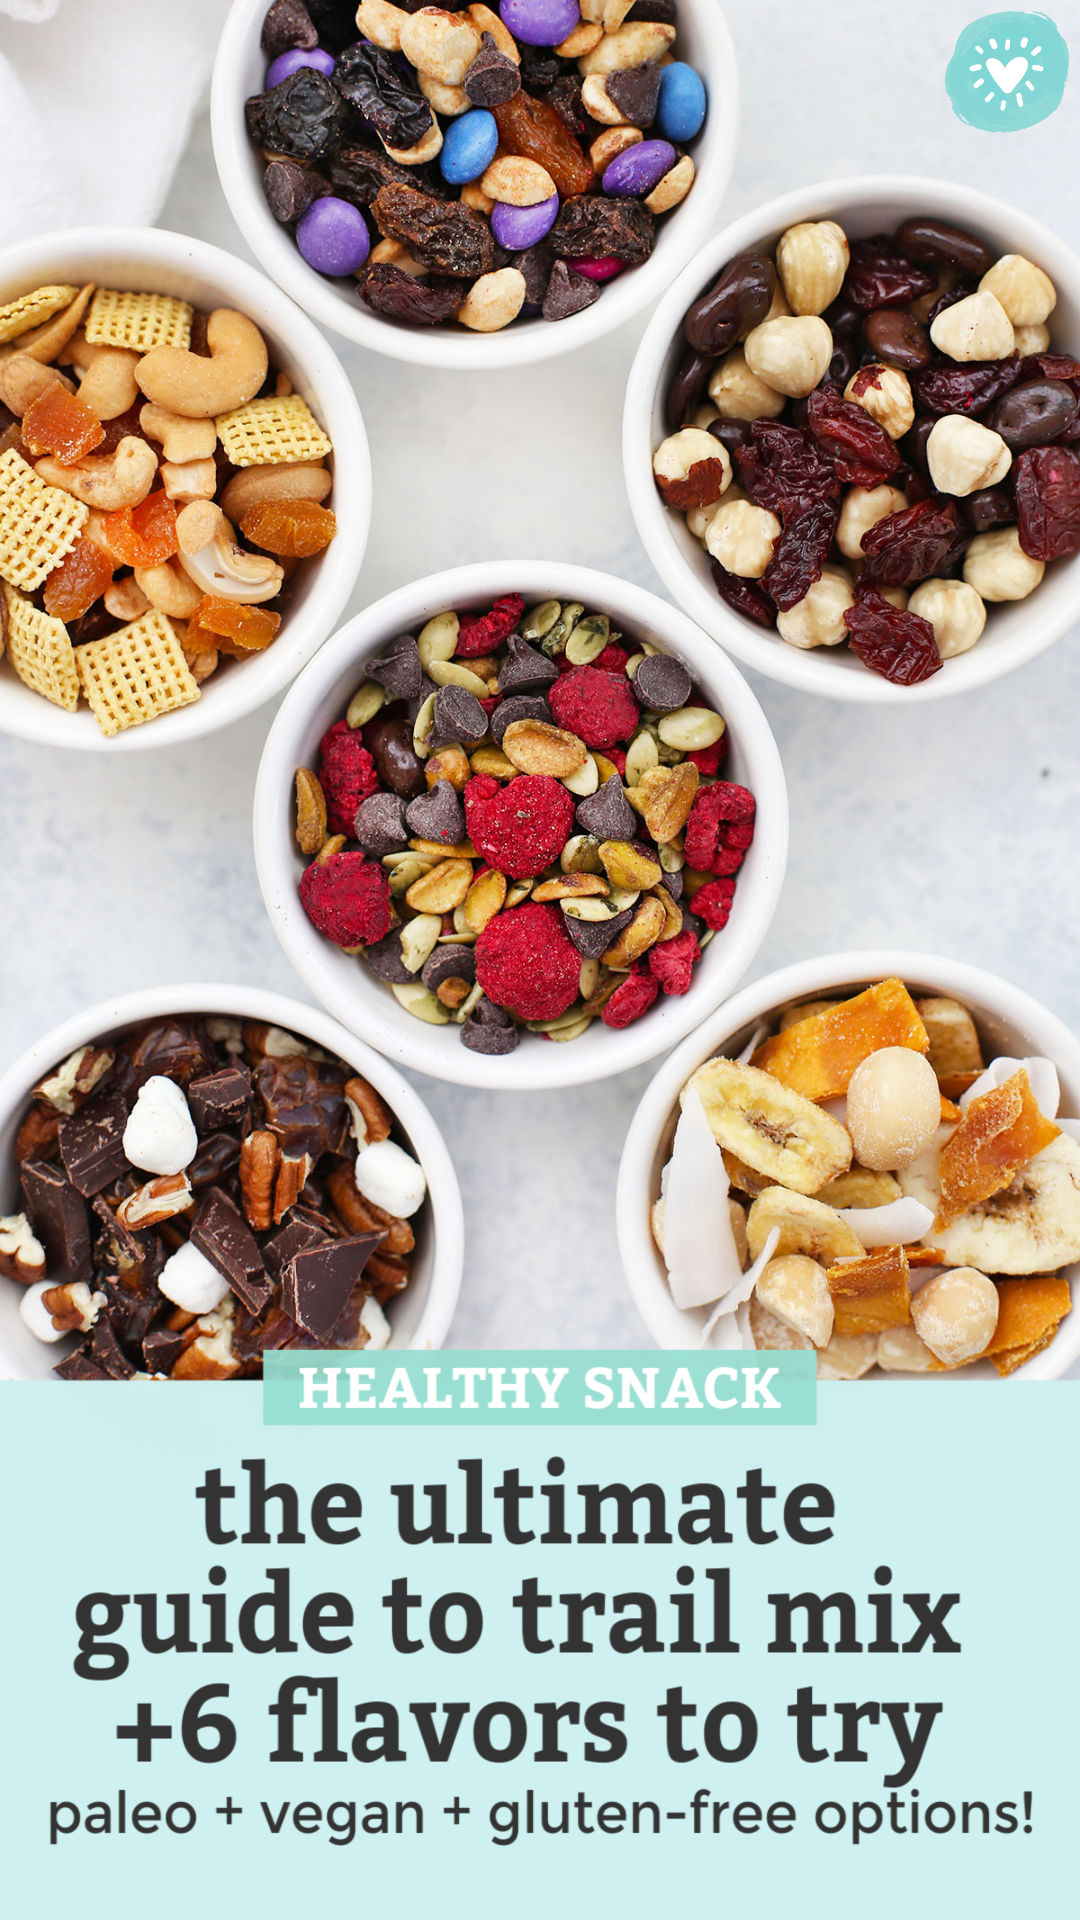 How to Make the BEST Trail Mix - Try this DIY Trail Mix Bar to make a week of healthy snacks in no time with these yummy trail mix ideas! Try our favorite flavor combinations or create your own. Gluten free, vegan, paleo, and Whole30 options! // Paleo snack // Trail Mix // Gluten free snack // Vegan snack #trailmix #glutenfree #vegan #paleo #snack #healthysnack